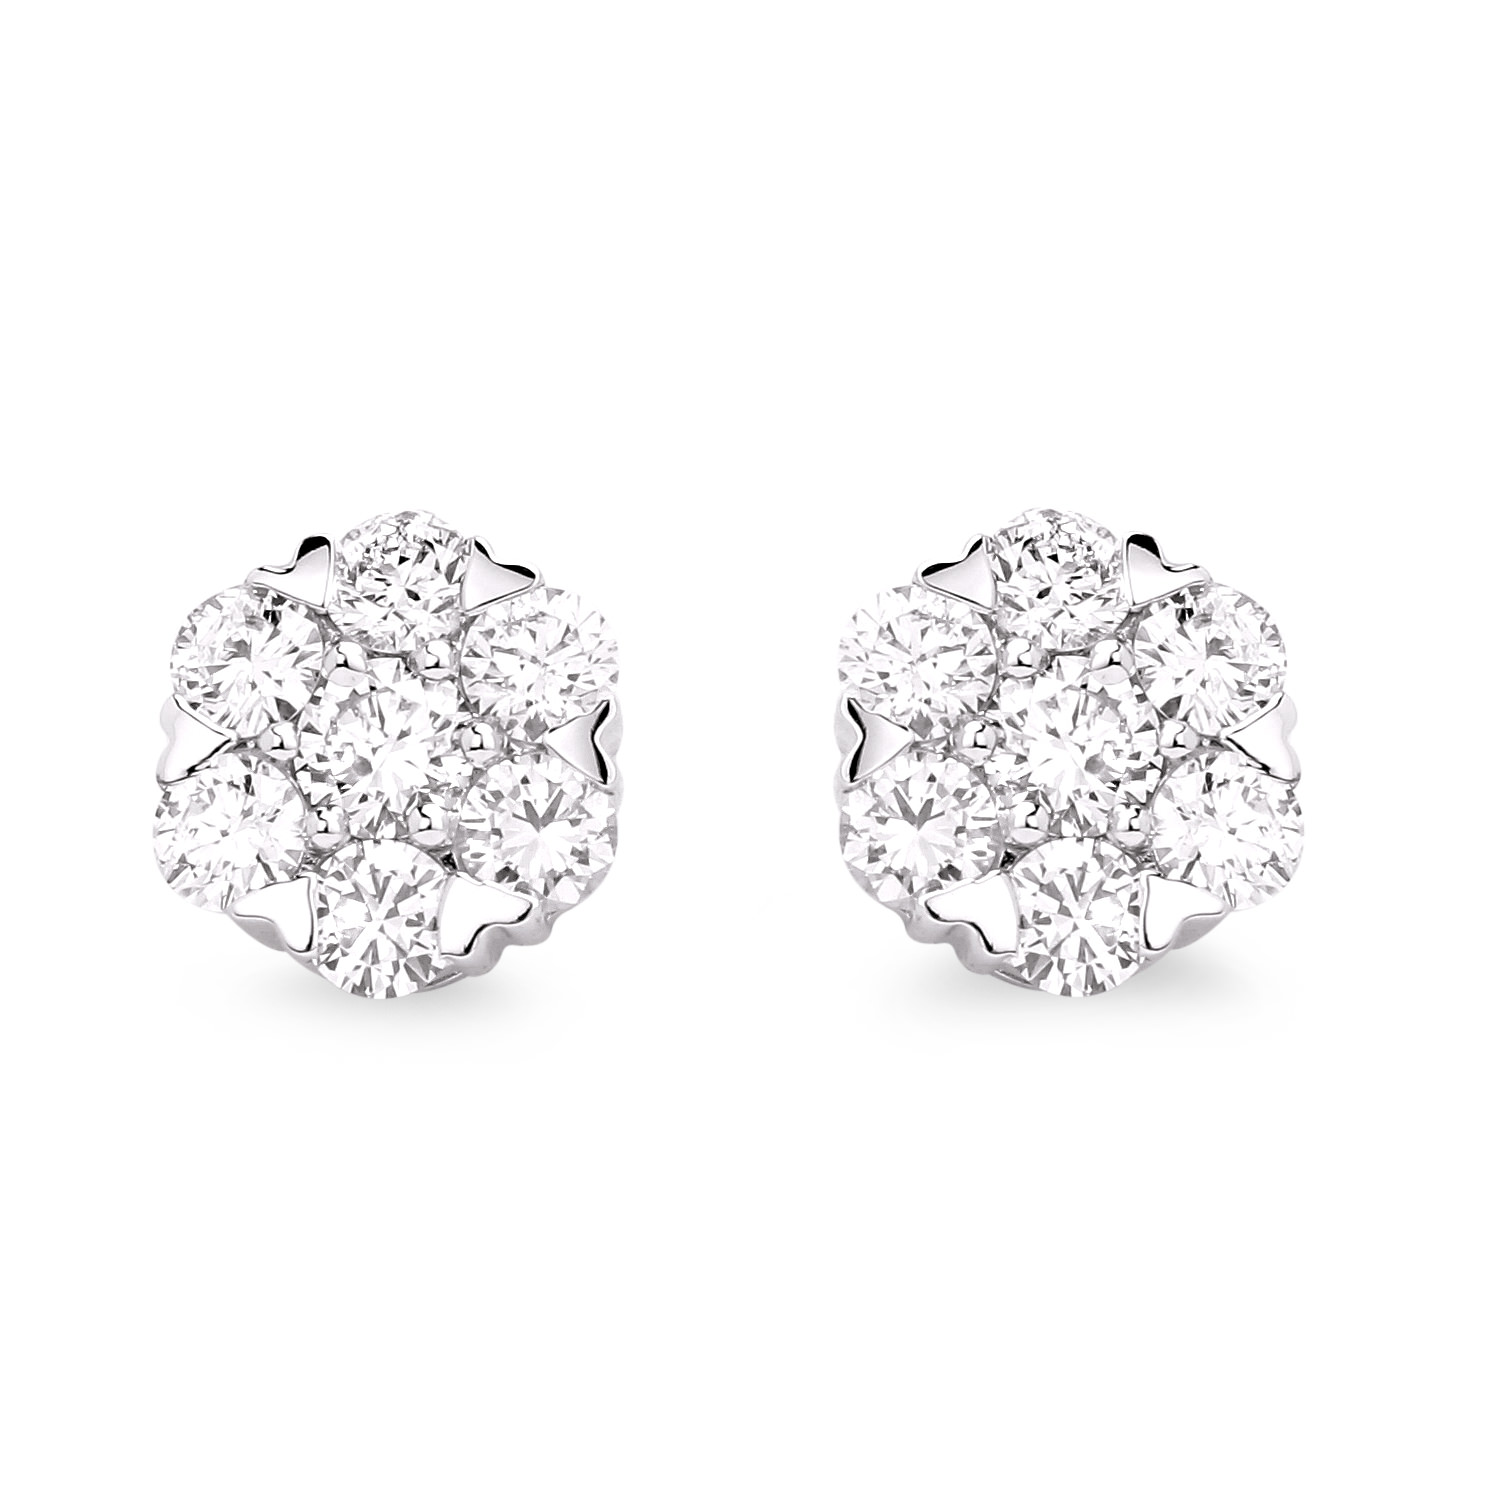 Diamond Stud Earrings SGE264 (Earrings)